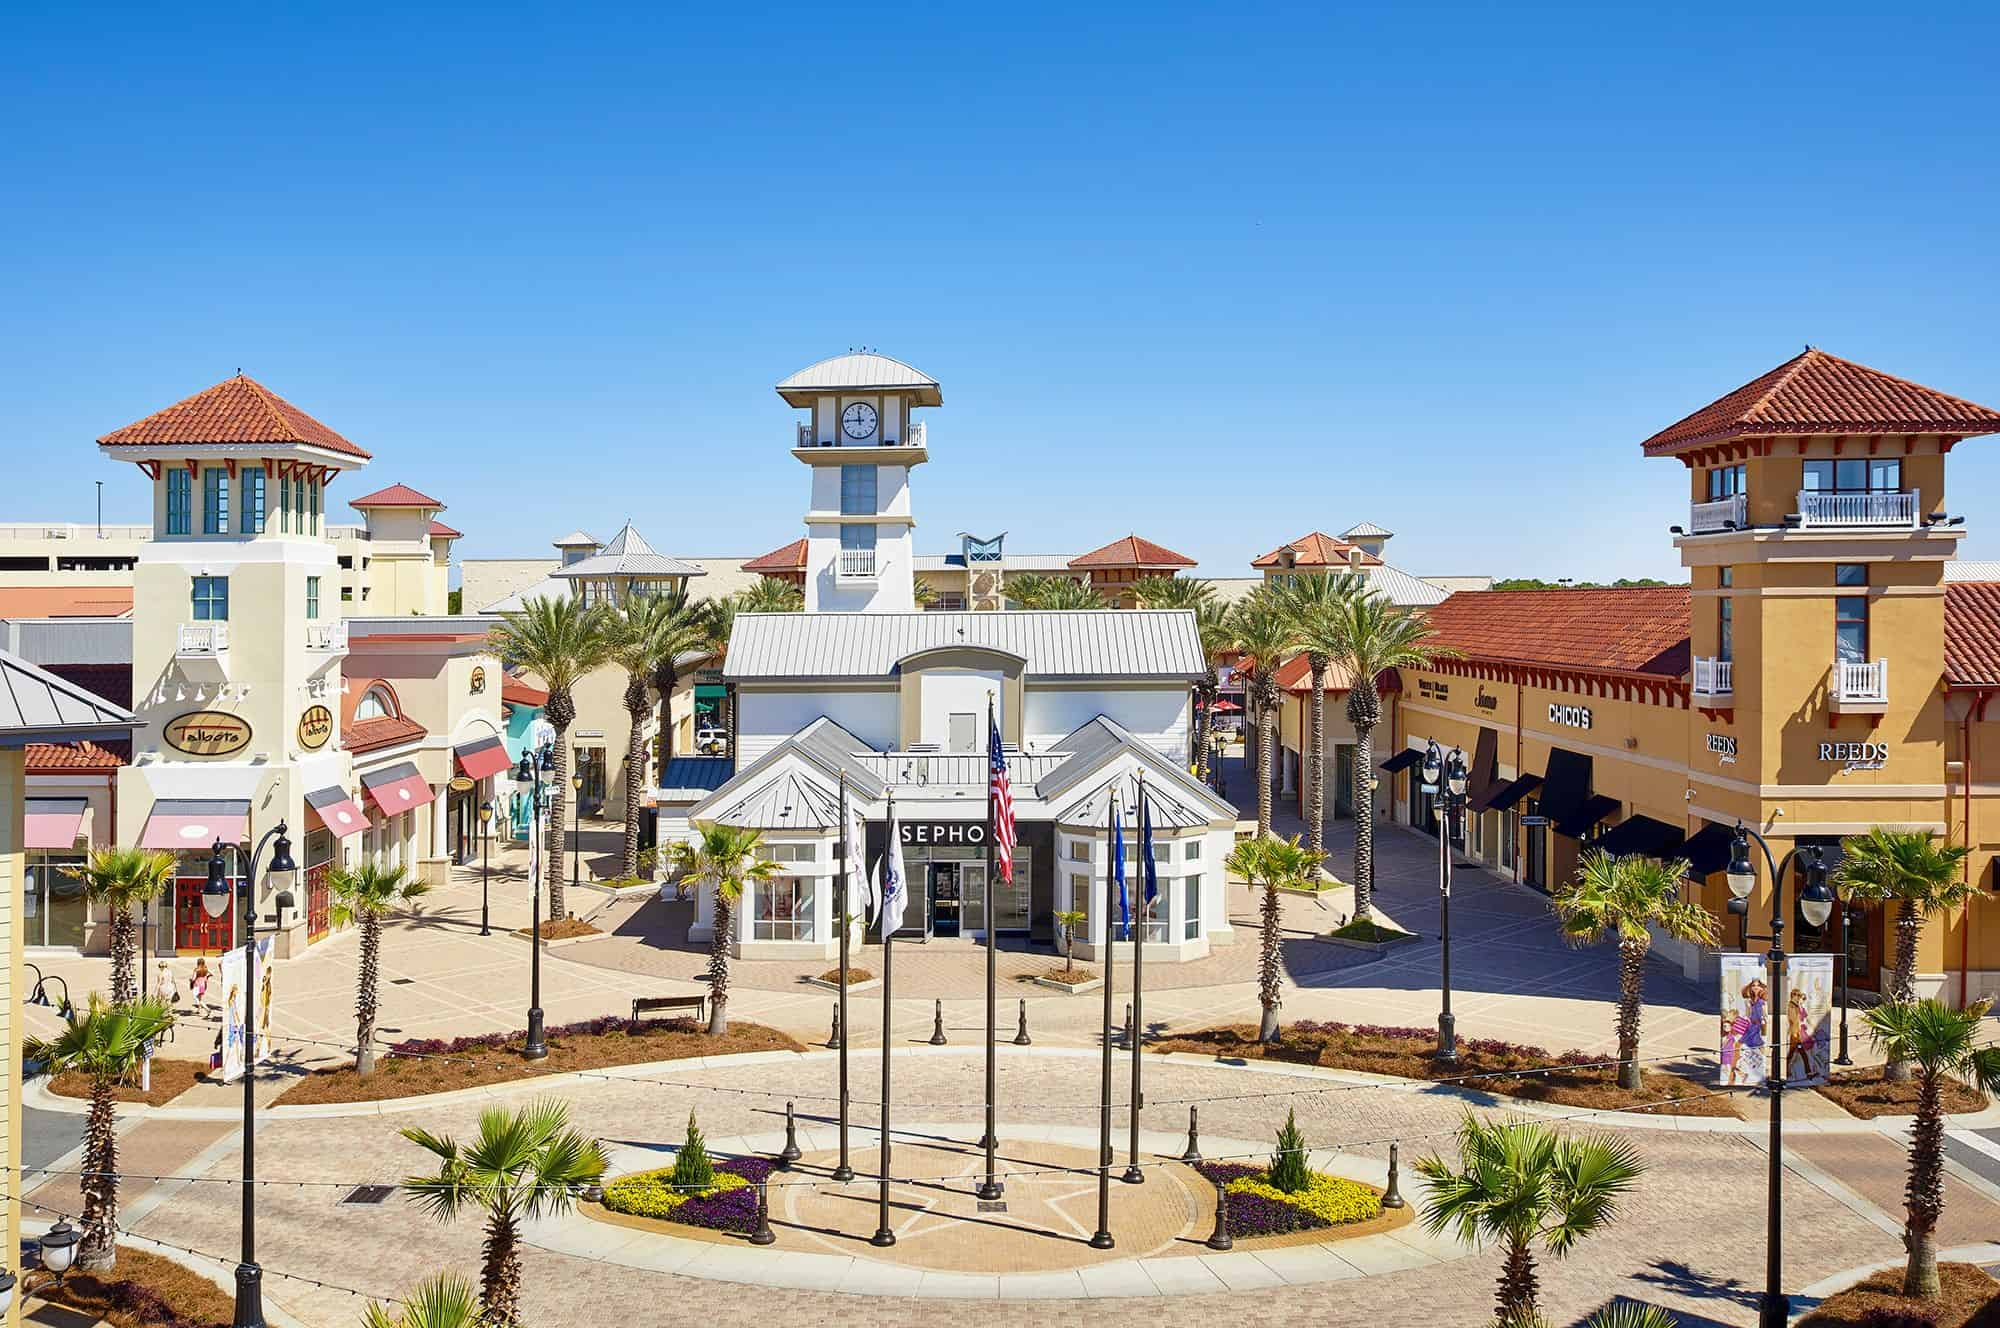 Destin Commons, 4300 Legendary Drive